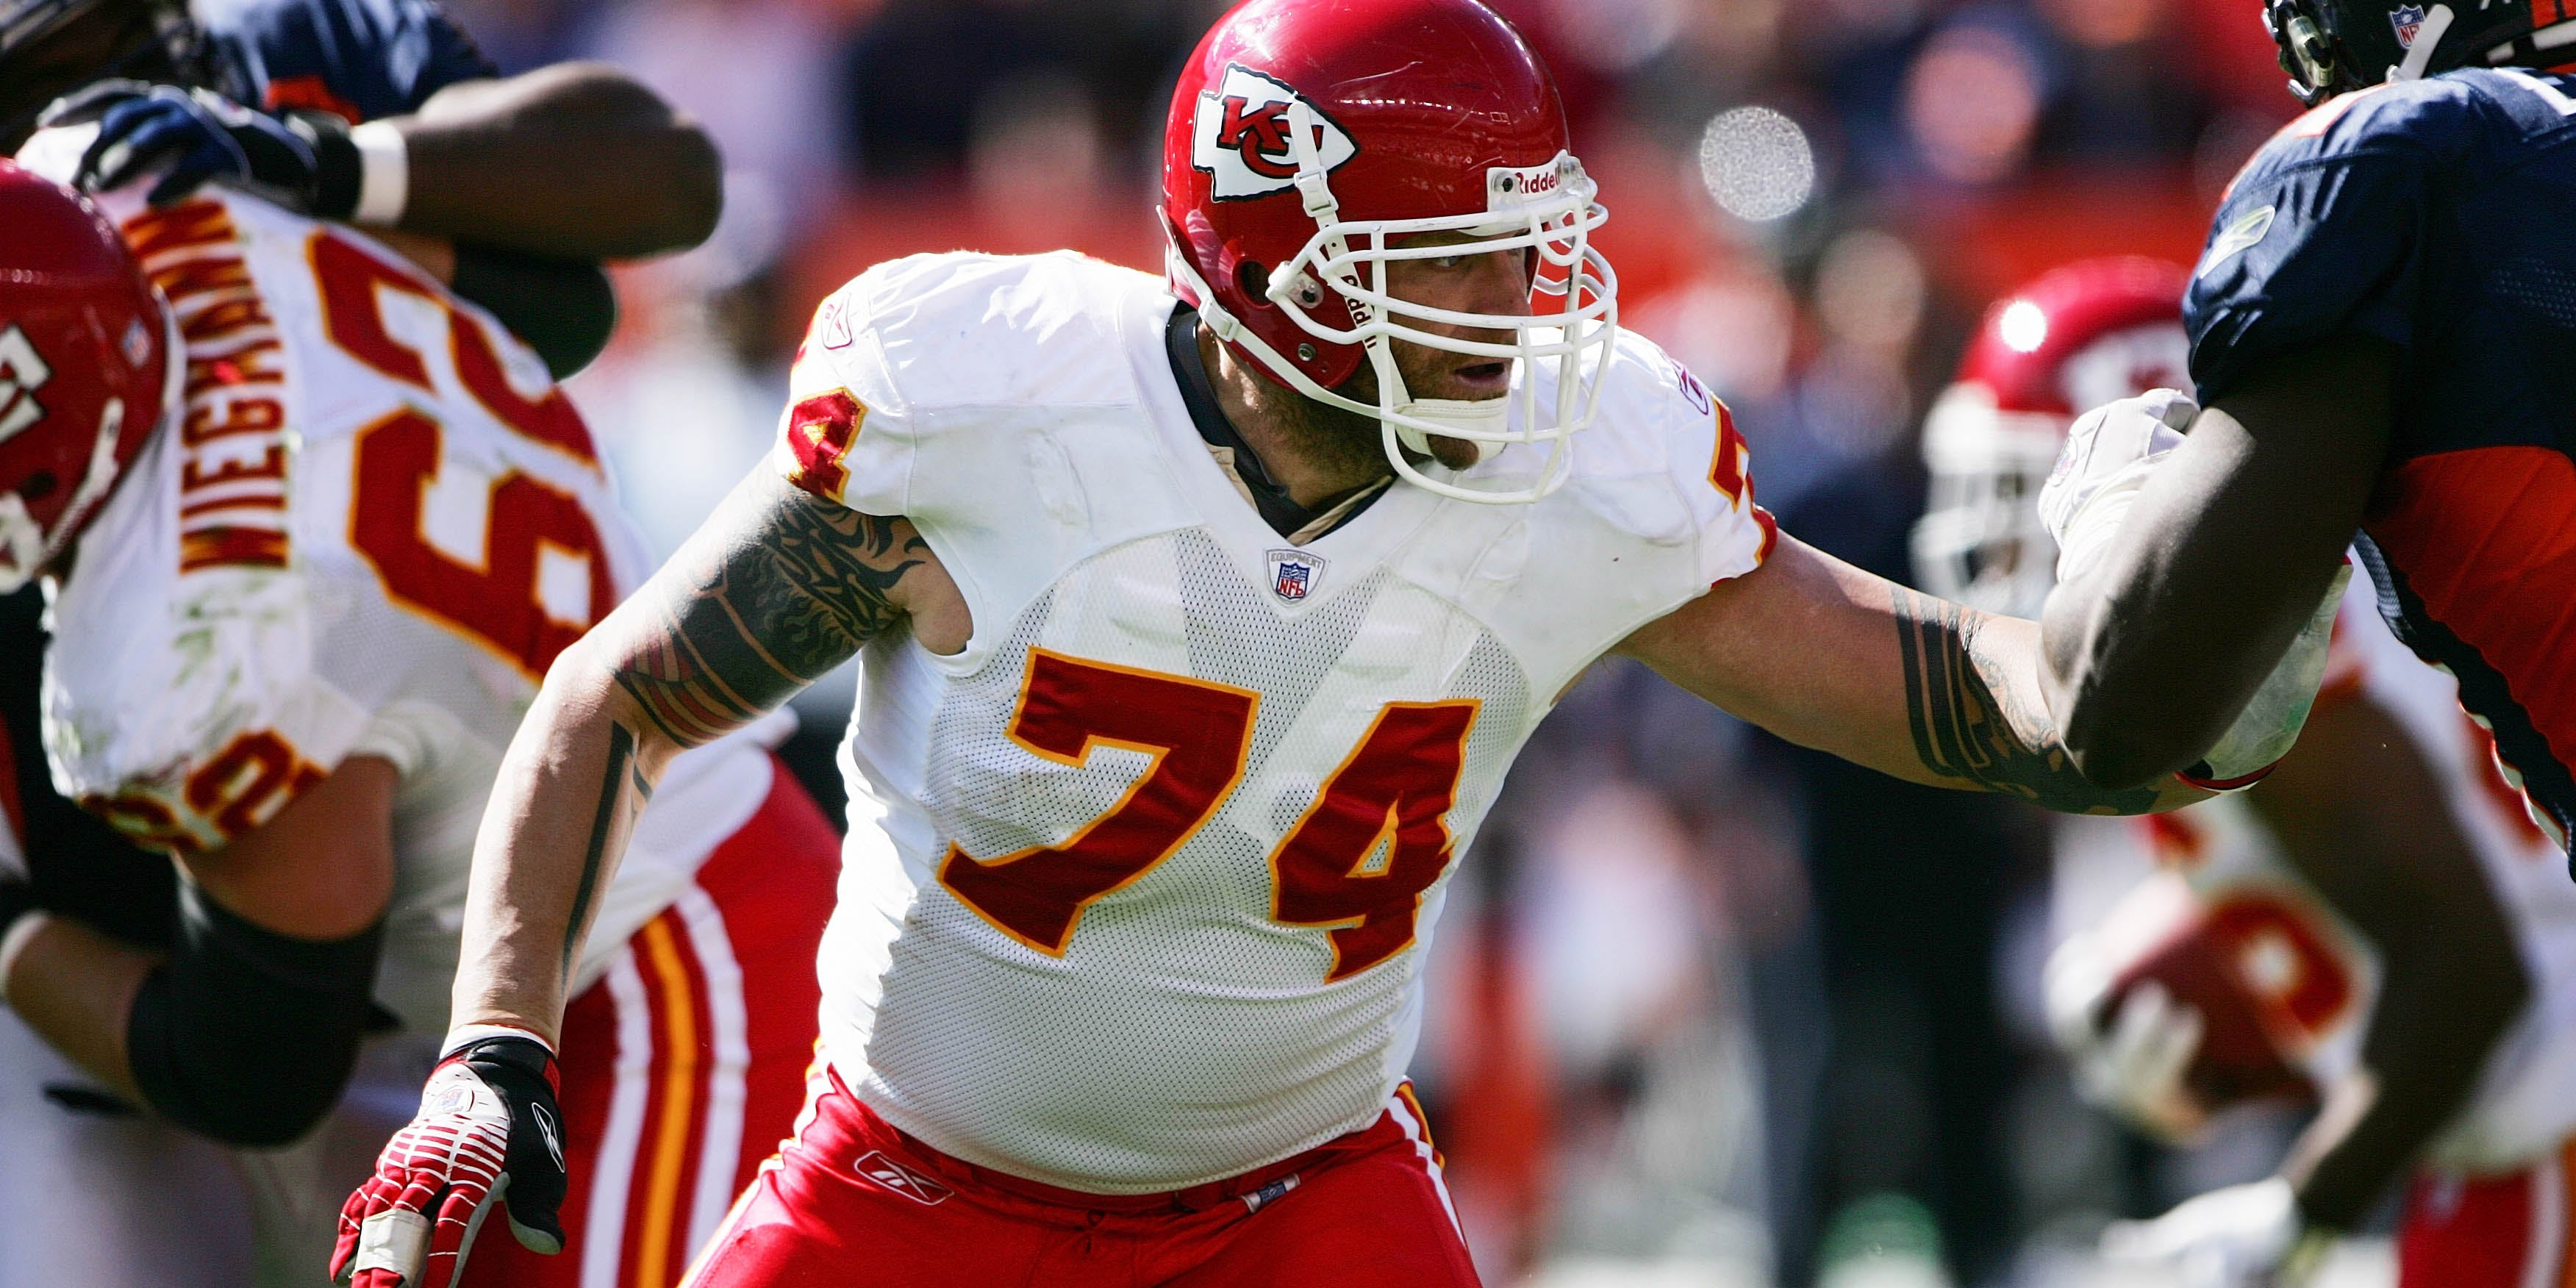 DENVER - SEPTEMBER 17: Offensive tackle Kyle Turley, #74 of the Kansas City Chiefs, blocks during the game against the Denver Broncos at INVESCO Field at Mile High on September 17, 2006 in Denver, Colorado. Turley is now retired from the NFL and an advocate for CBD for CTE, a condition which severely disrupts the lives of many former athletes. (Photo by Doug Pensinger via Getty Images)